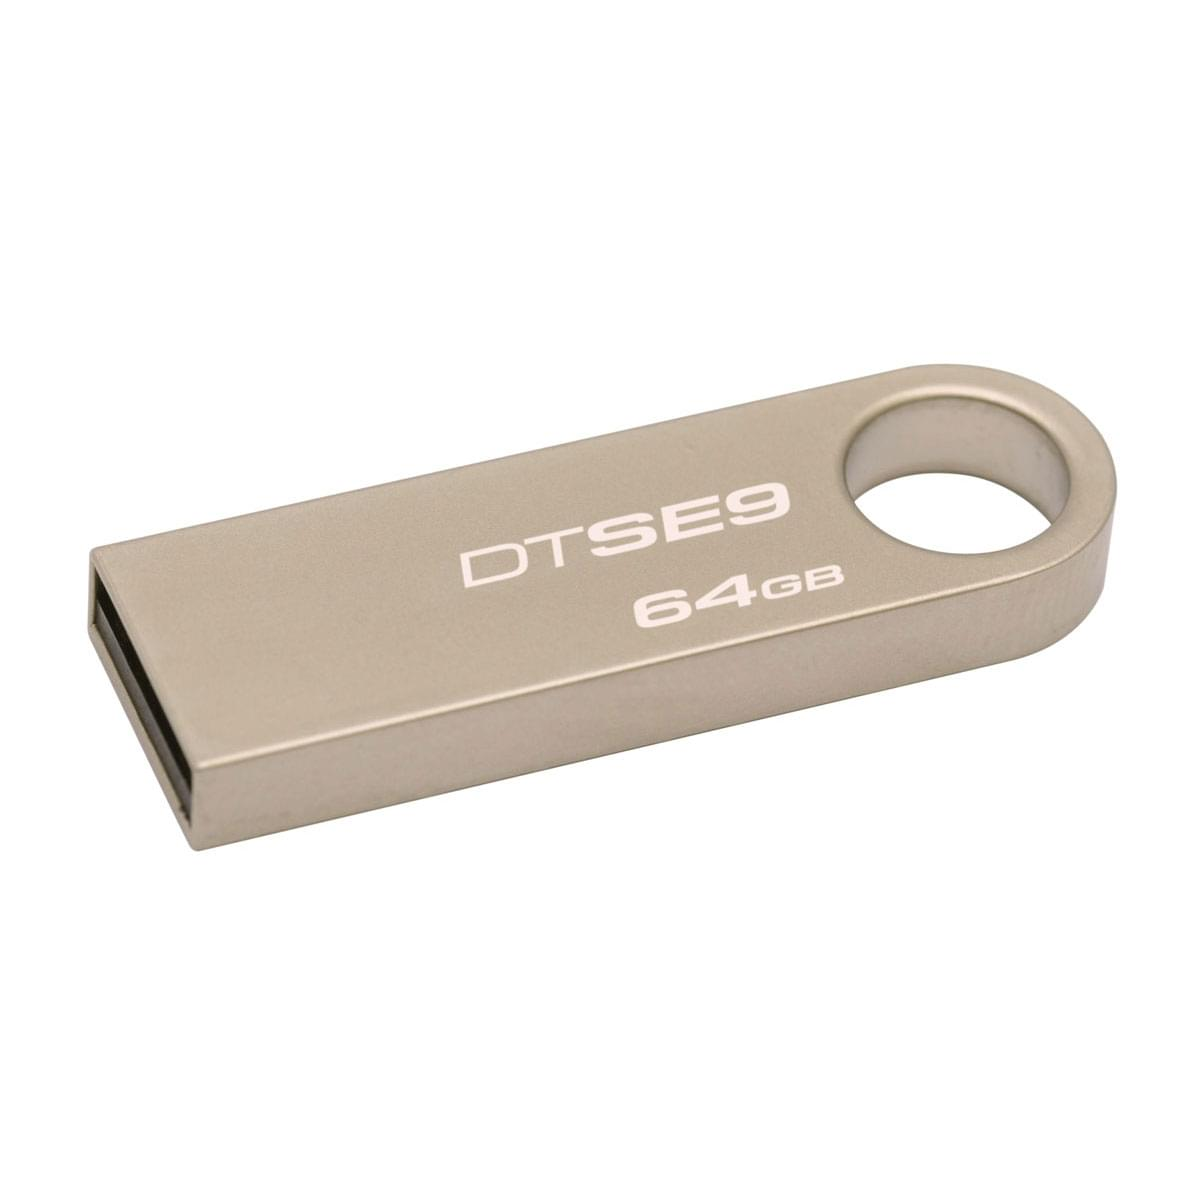 Kingston 64Go USB 2.0 Data SE9 - Clé USB Kingston - Cybertek.fr - 0